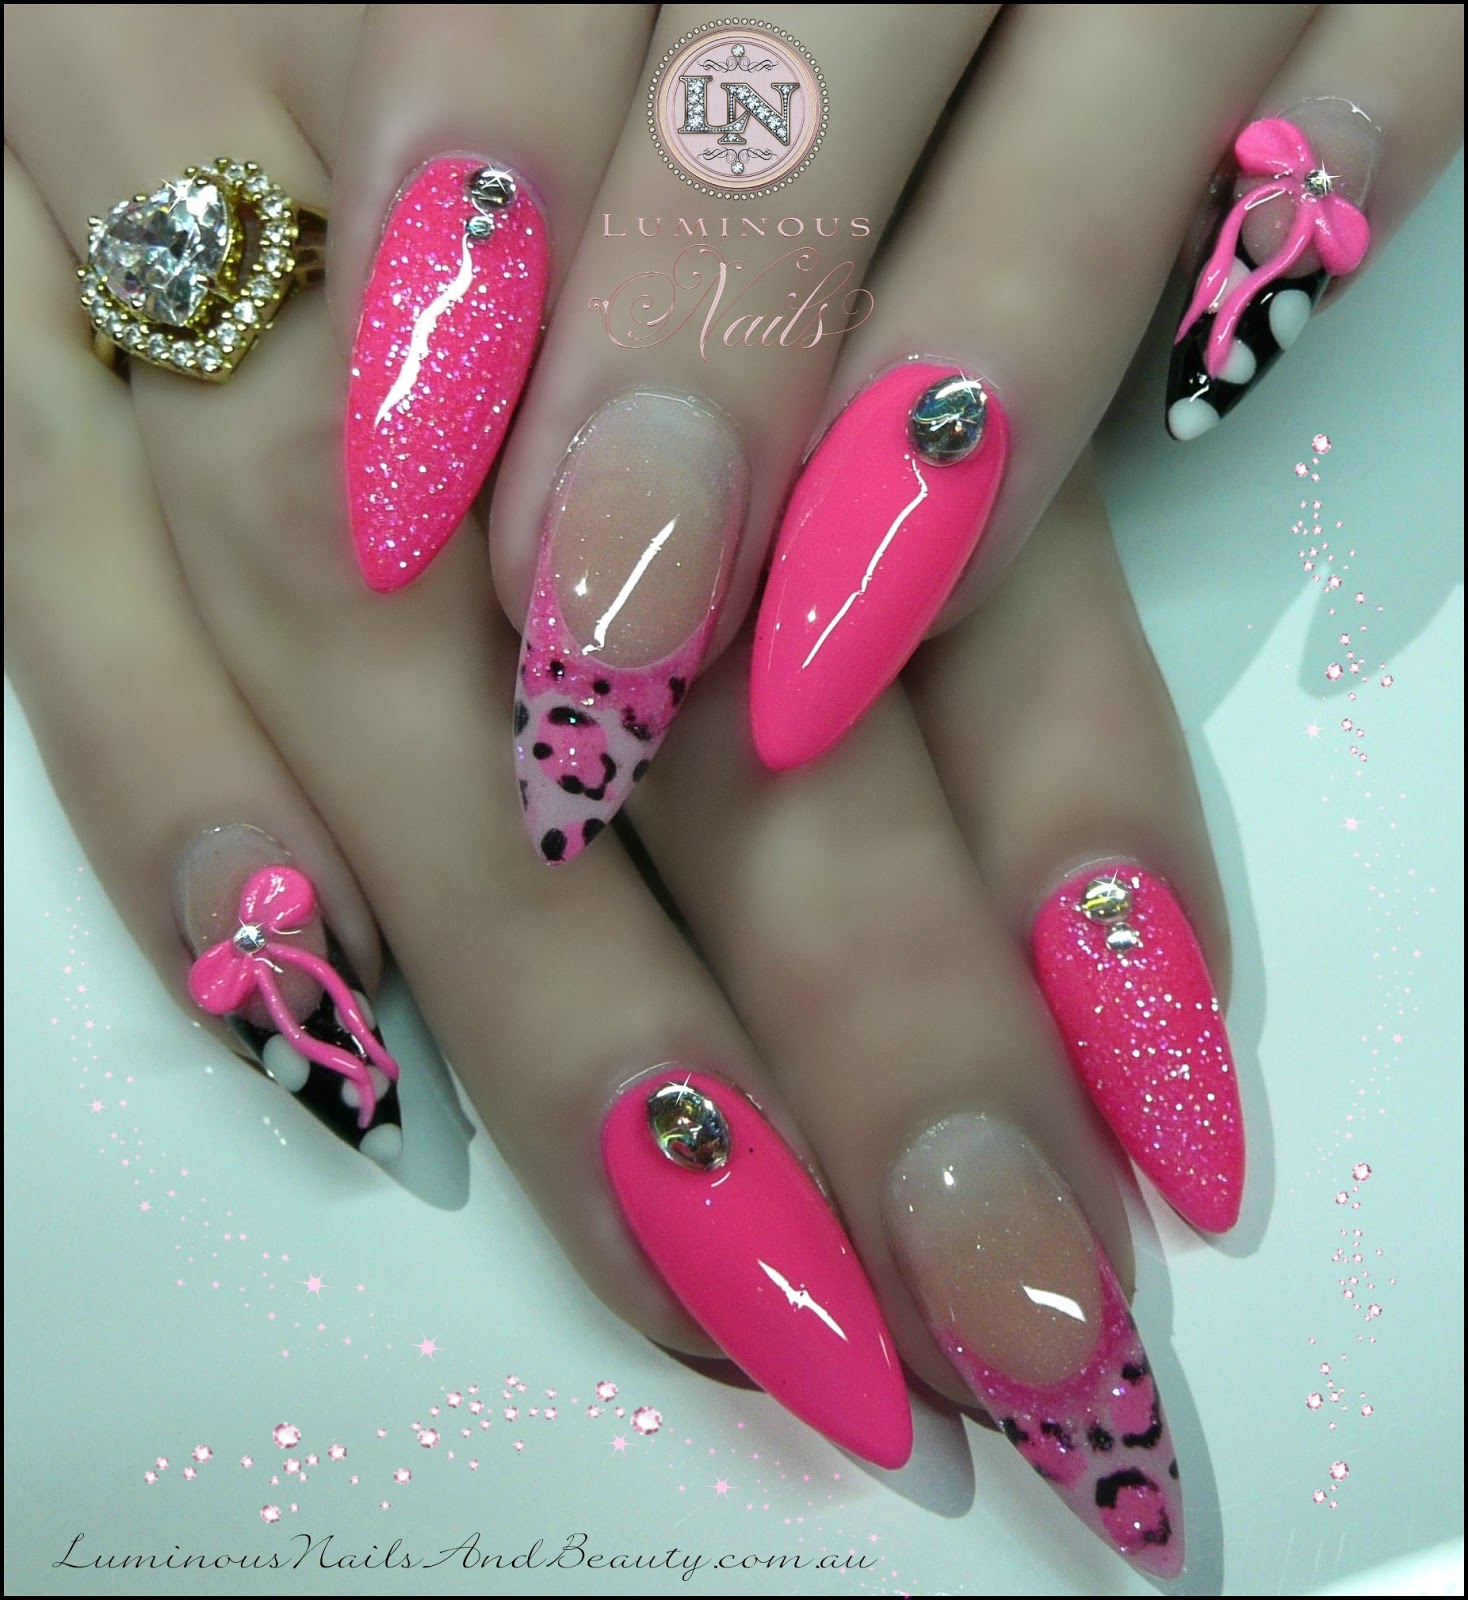 Hot Nail Designs: Luminous Nails: July 2013